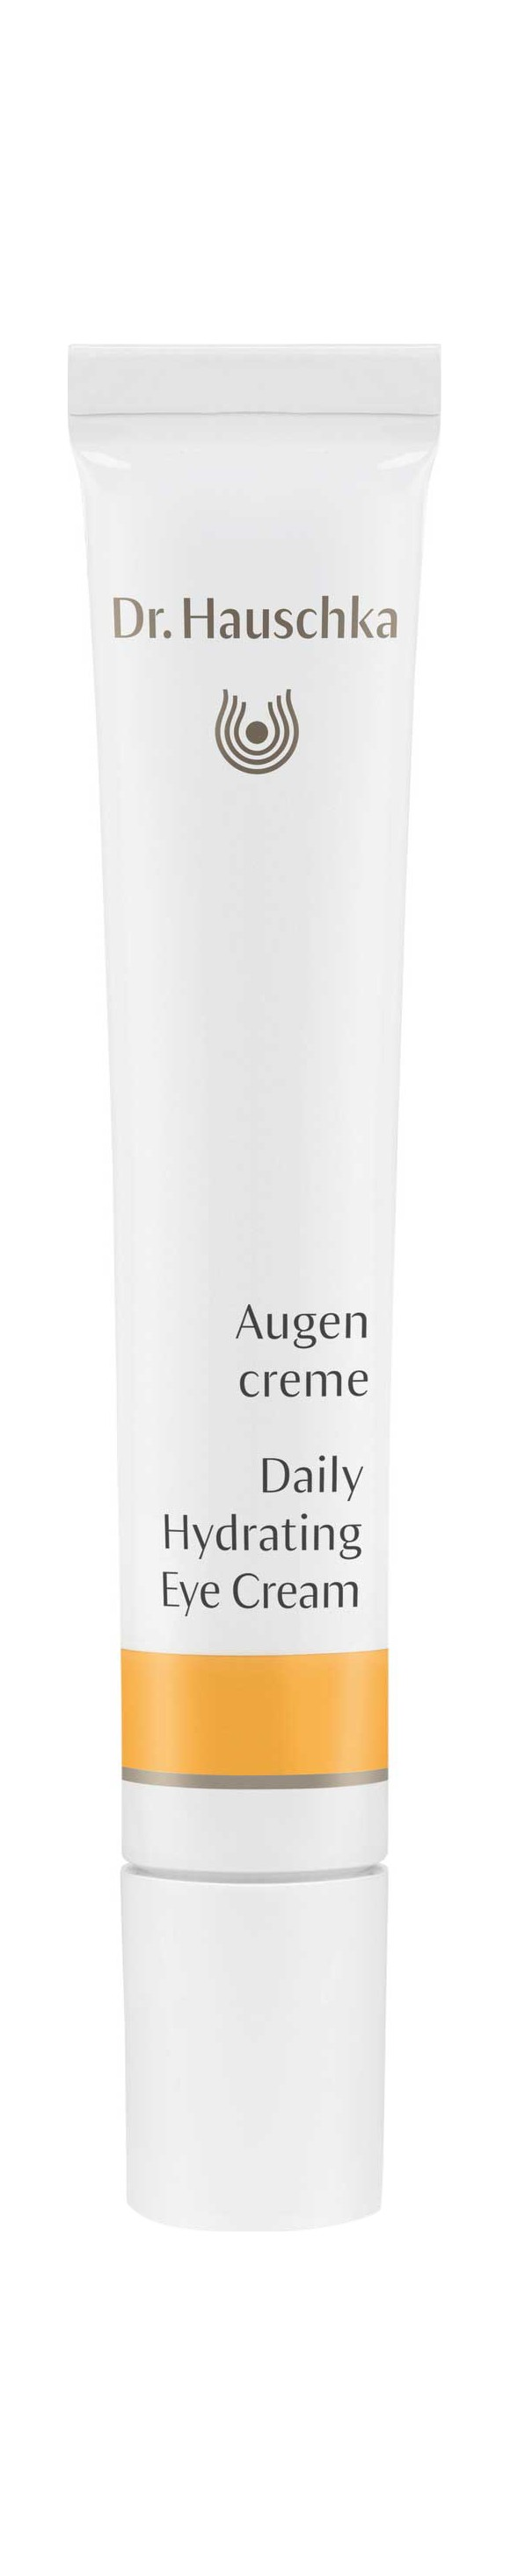 Dr. Hauschka - Daily Hydrating Eye Cream 12,5 ml